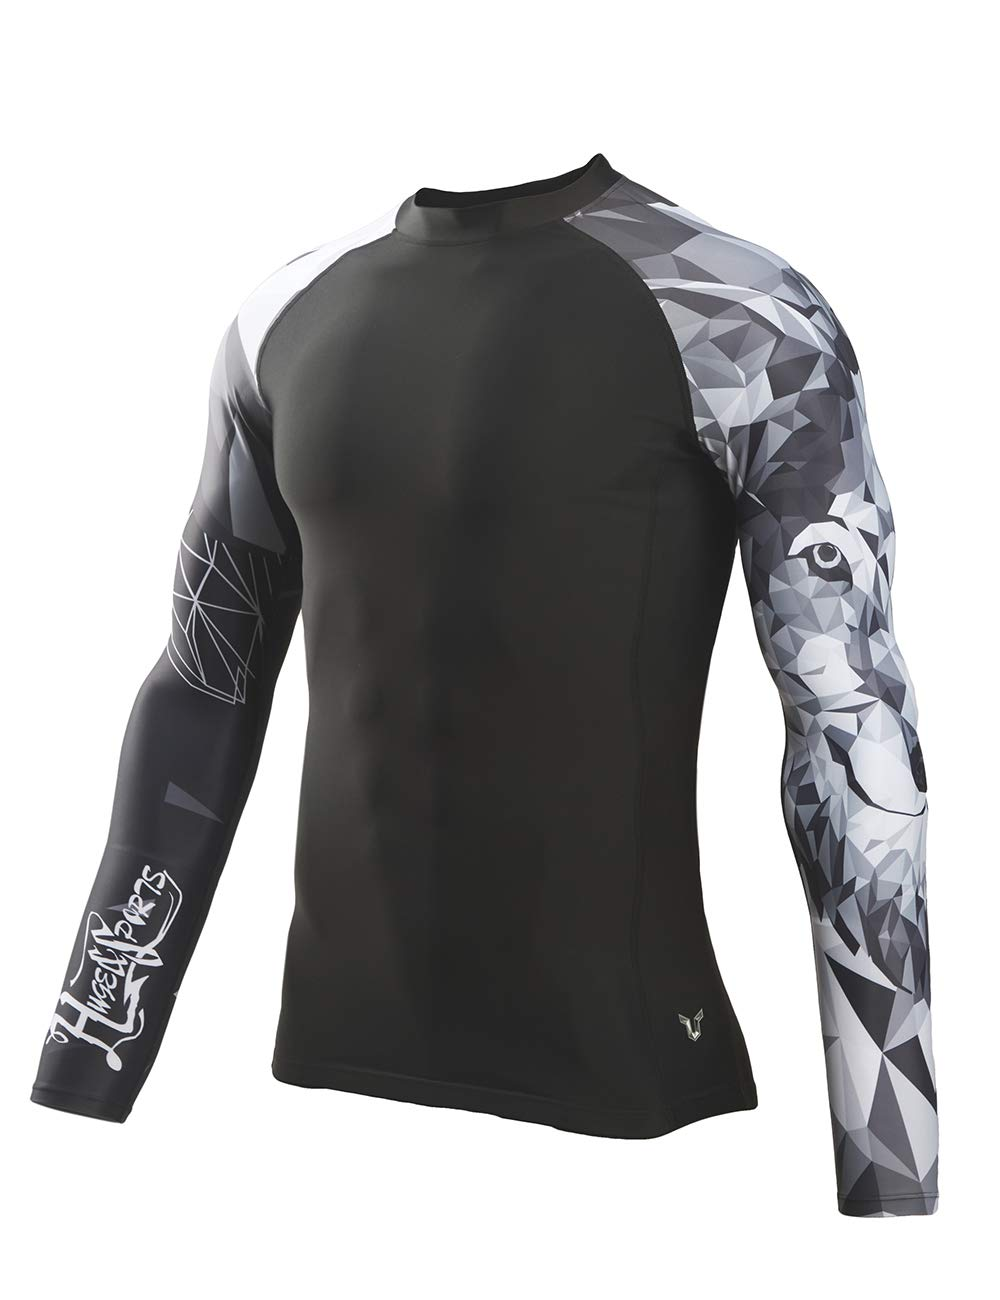 HUGE SPORTS Wildling Series UV Protection Quick Dry Compression Rash Guard(Wolf,2XL) by HUGE SPORTS